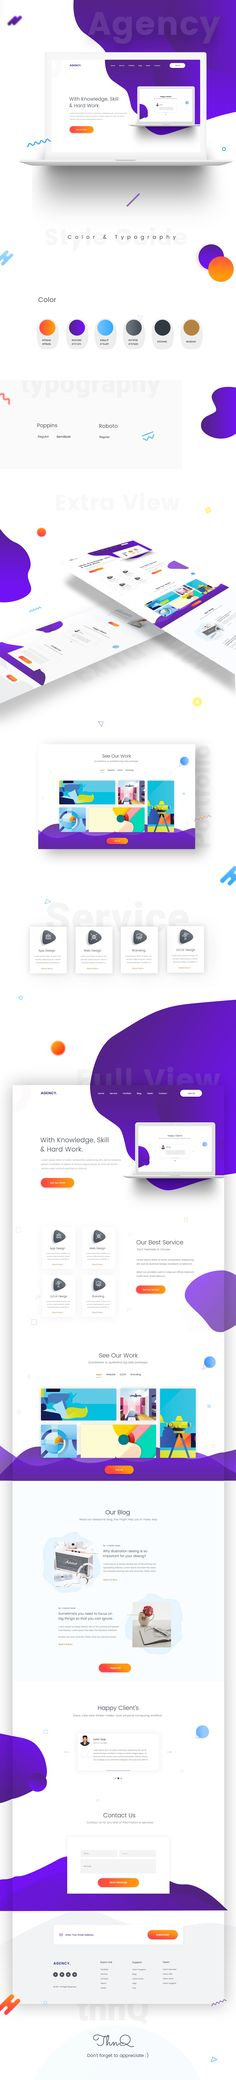 "Check out this @Behance project: ""Agency-Landing-page Design"" https://www.behance.net/gallery/57284397/Agency-Landing-page-Design"